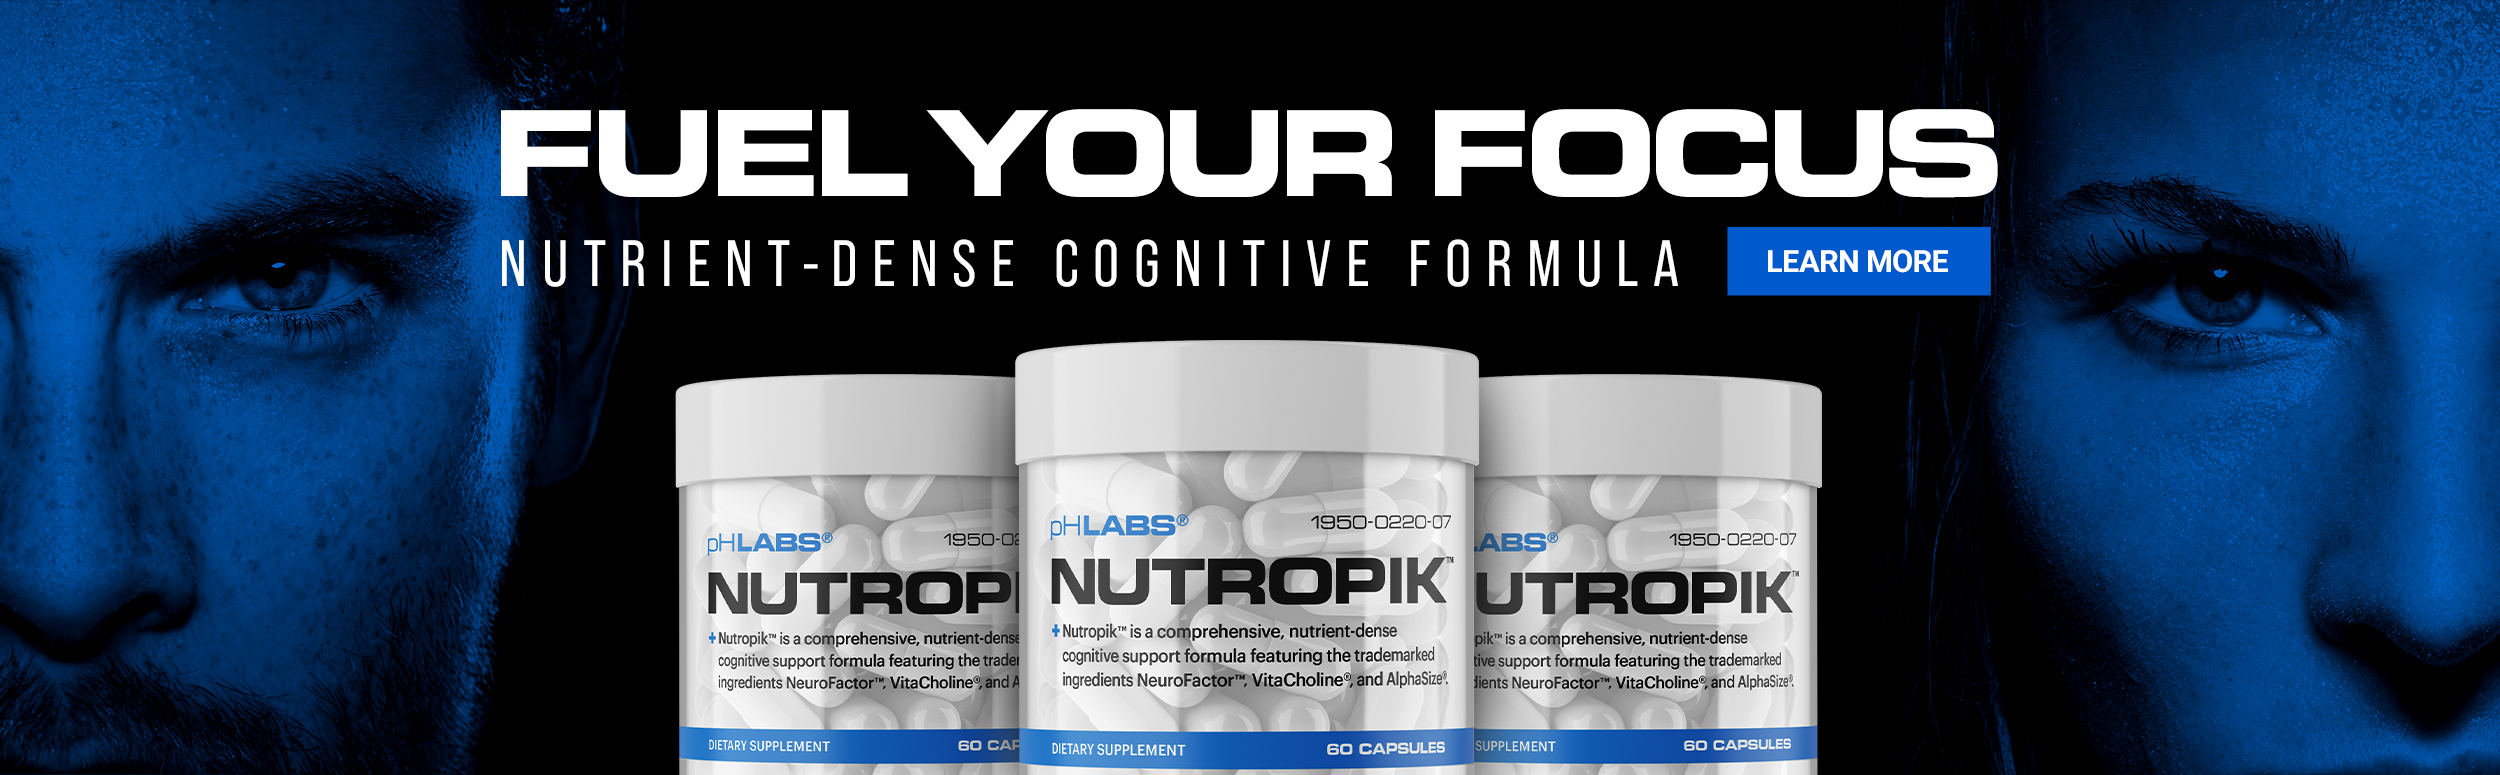 phLabs - Nutropik - Nutrient dense cognitive formula - Click to Learn More